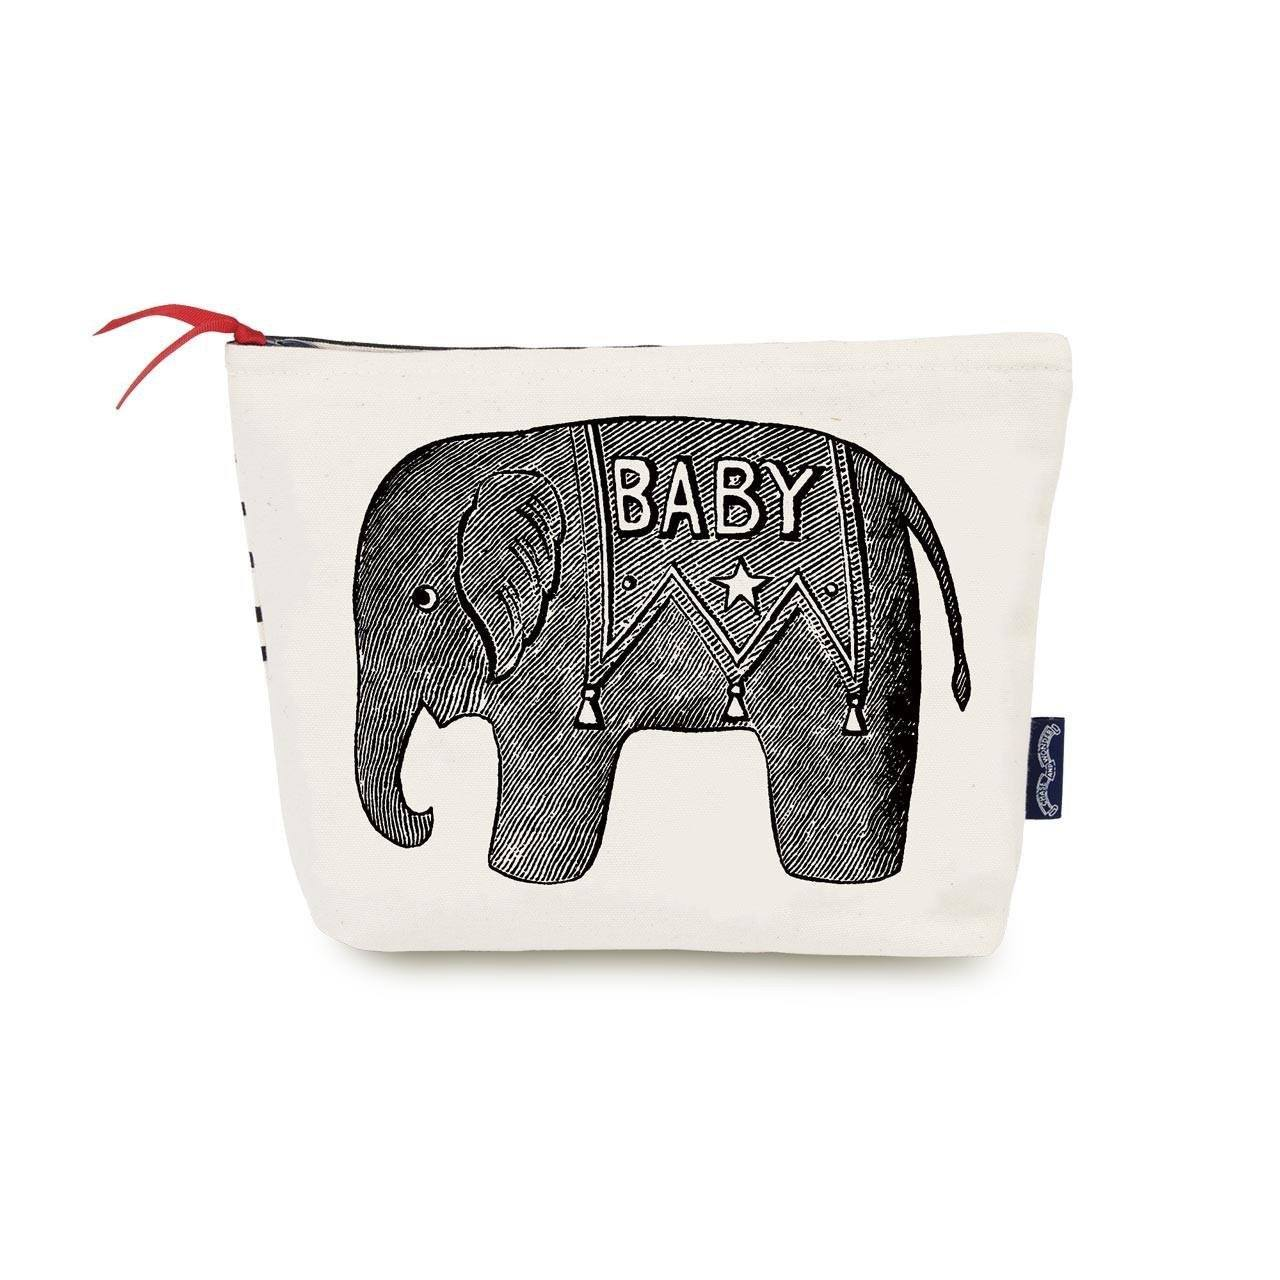 Baby Elephant Wash Bag - Chase and Wonder - Proudly Made in Britain